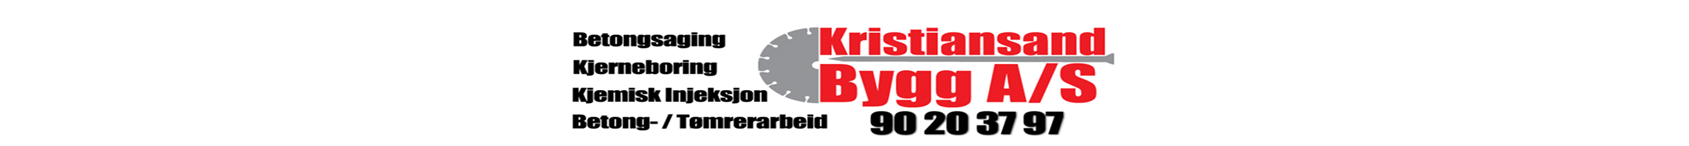 kristiansand-bygg-as-3